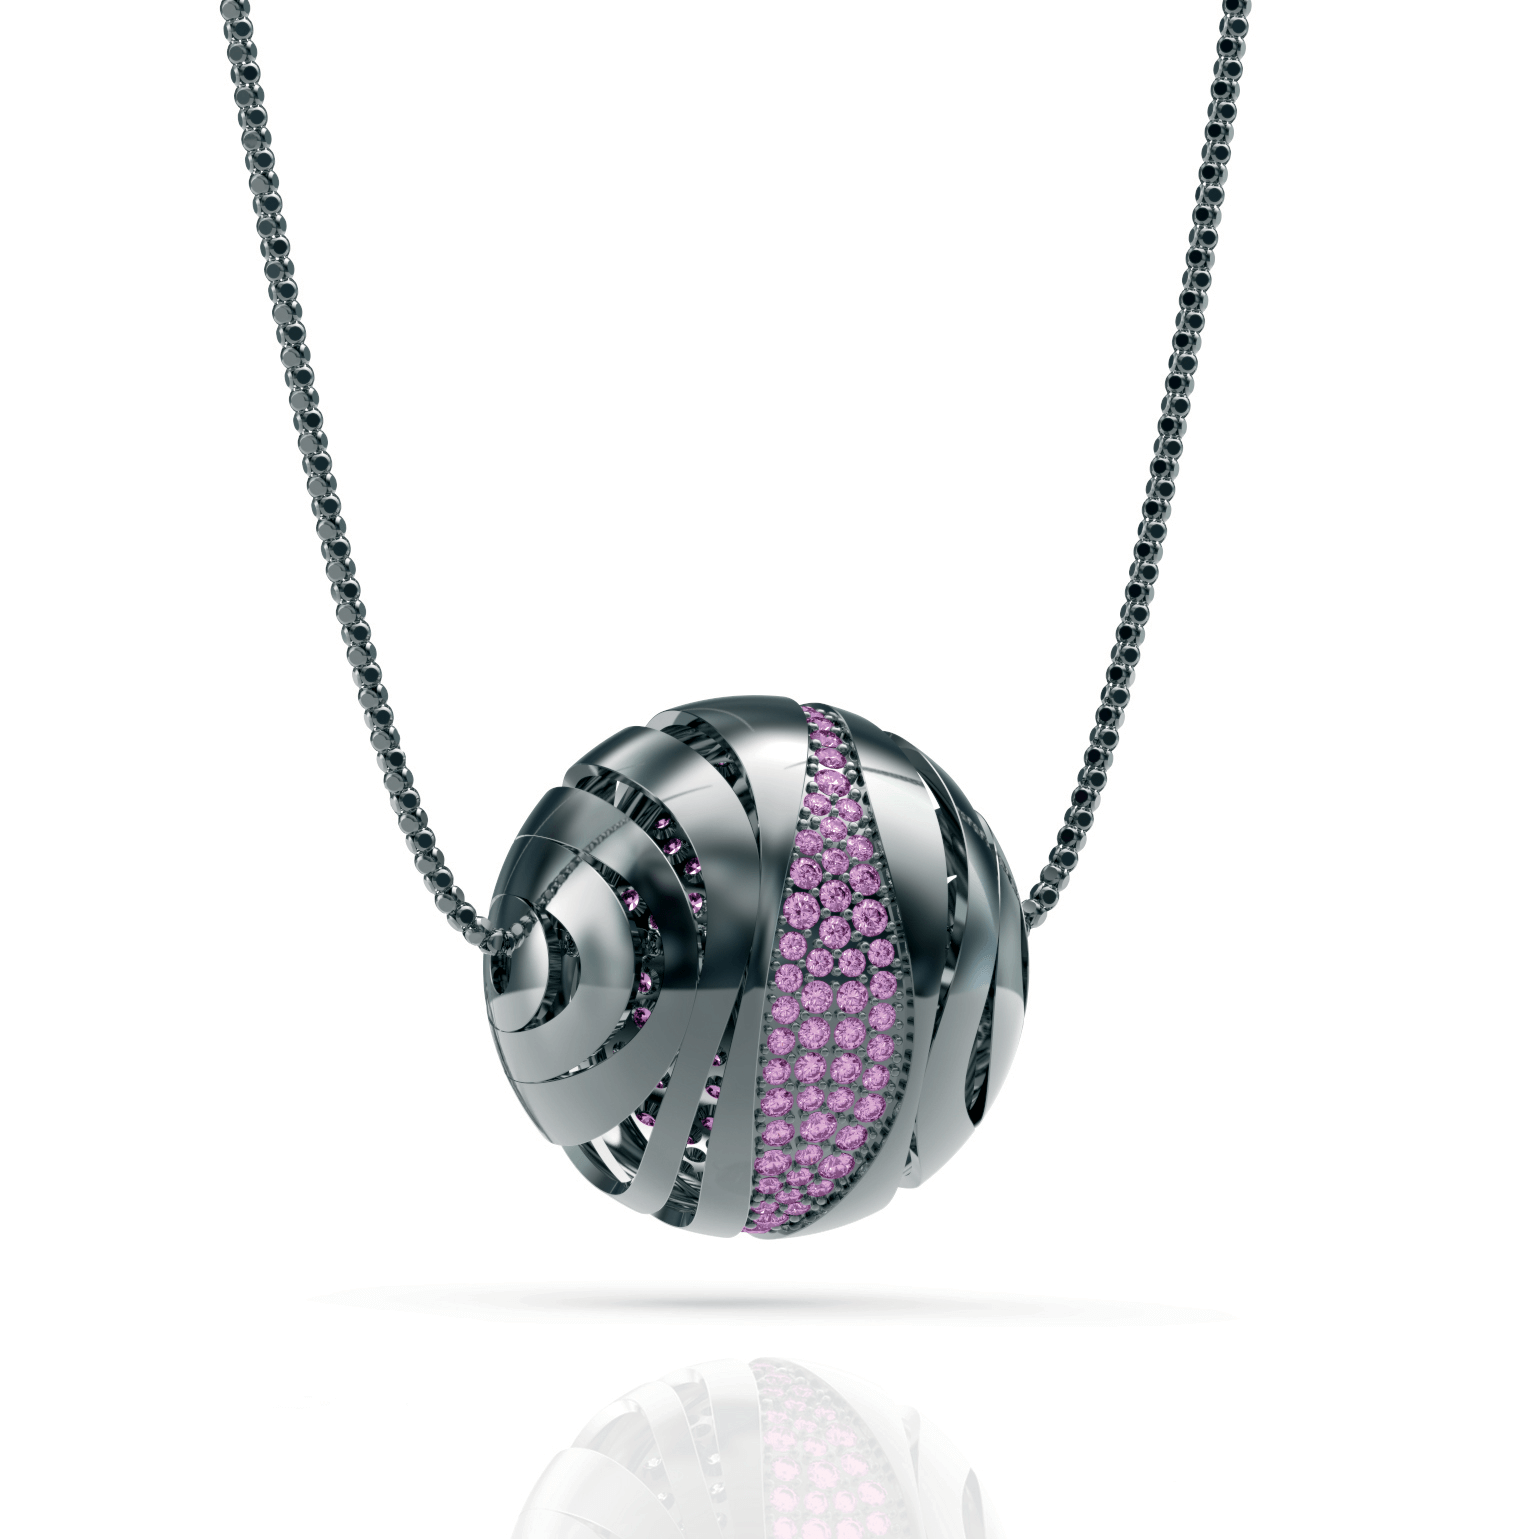 Necklace silver 925/000 black rhodium platedCZ purple fi 1,5 mm - 48x; 1,75 mm- 39 x; 2 mm- 18 x